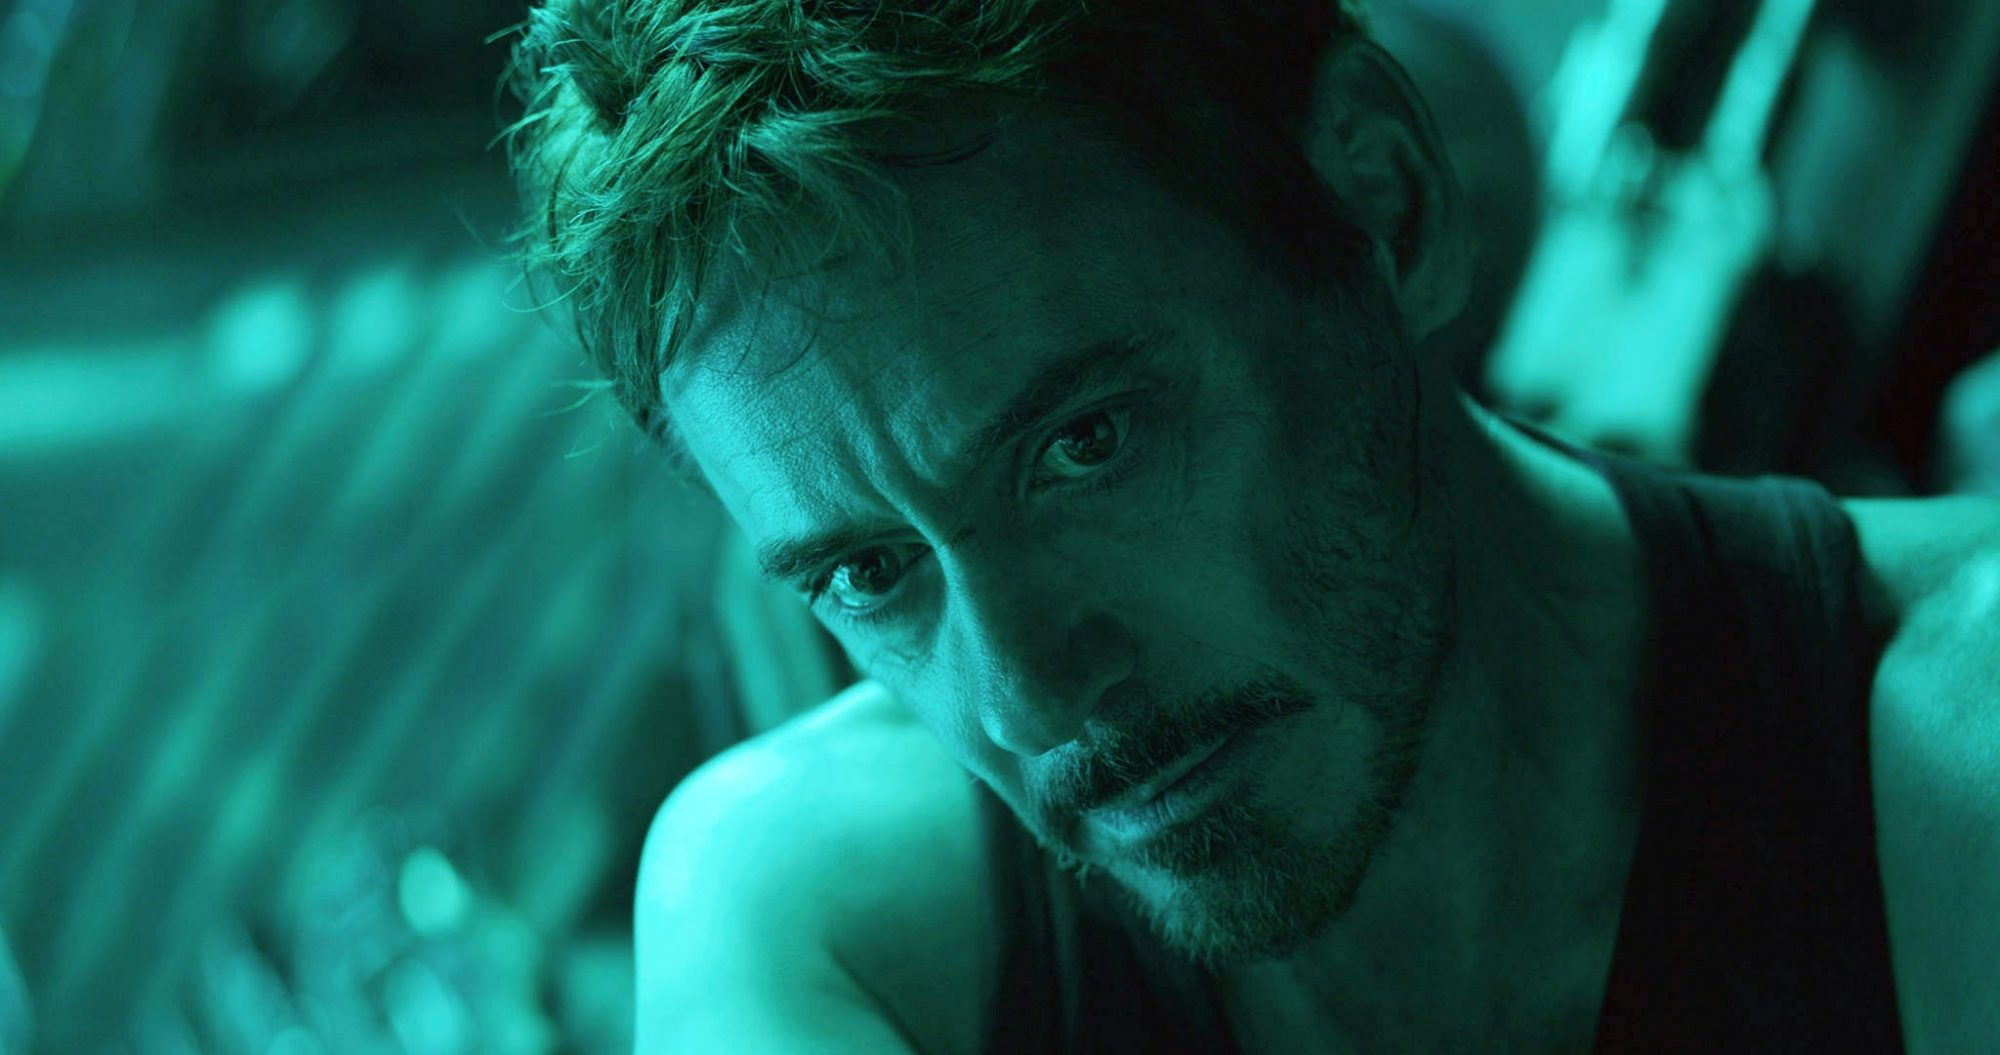 Avengers Endgame Review - Robert Downey Jr as Tony Stark